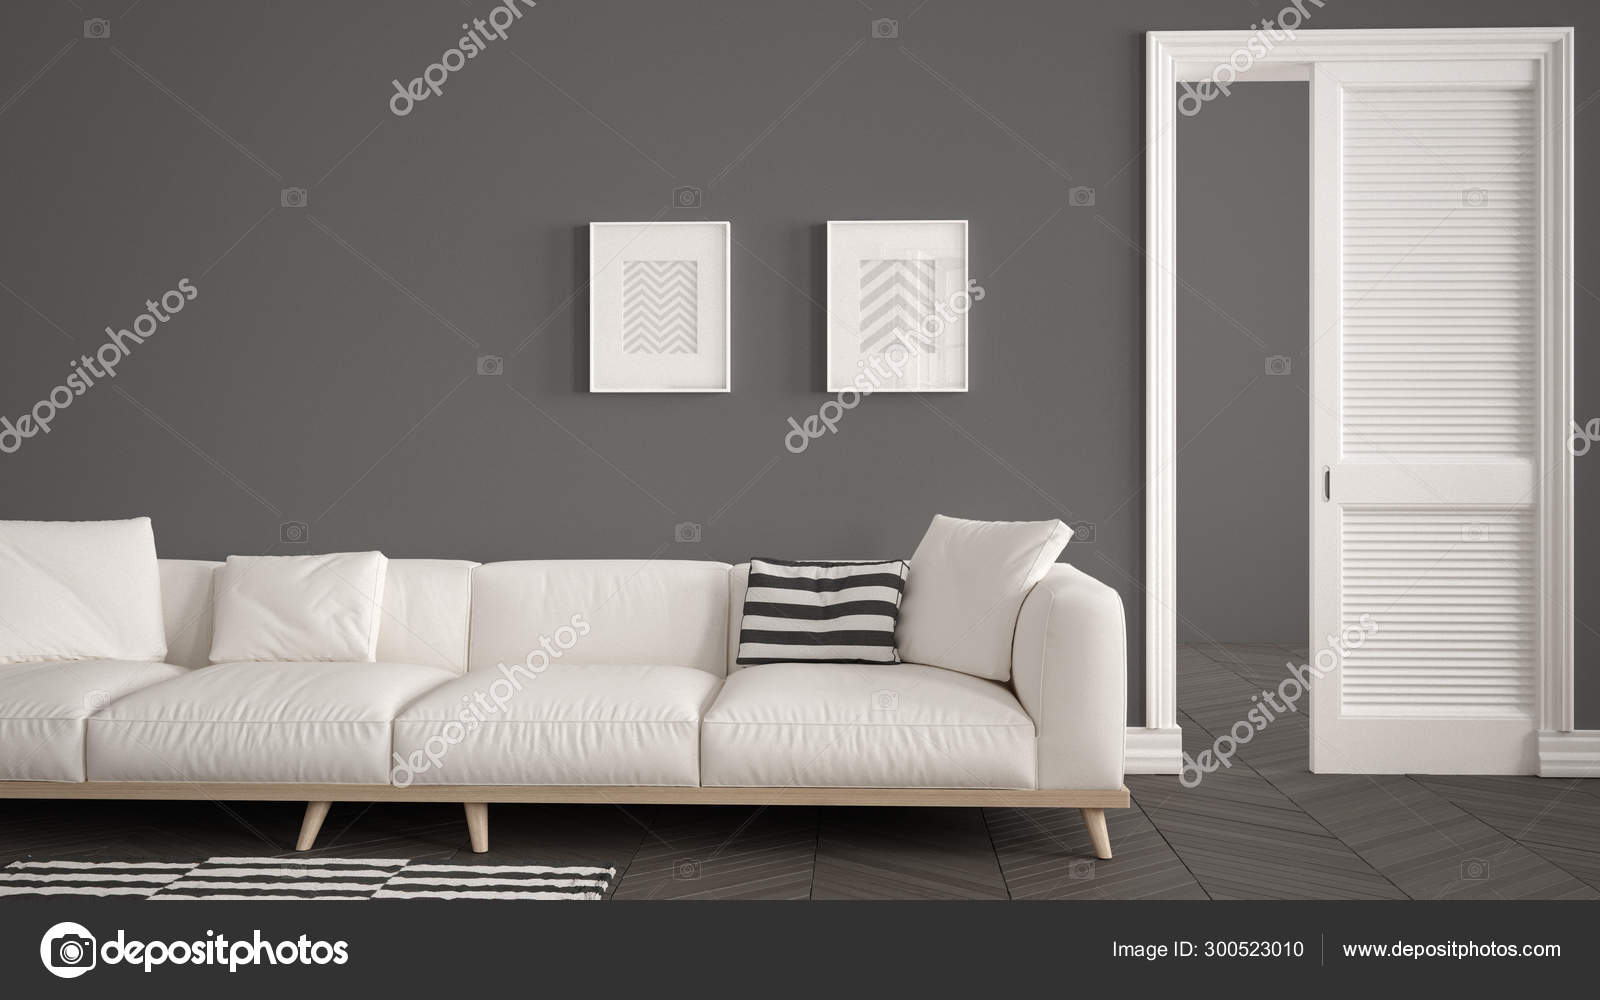 Modern Living Room With White Sofa And Carpet Dark Wall Background With Open Door Herrigbone Parquet Template Background With Copy Space Interior Design Concept Idea Stock Photo C Archiviz 300523010